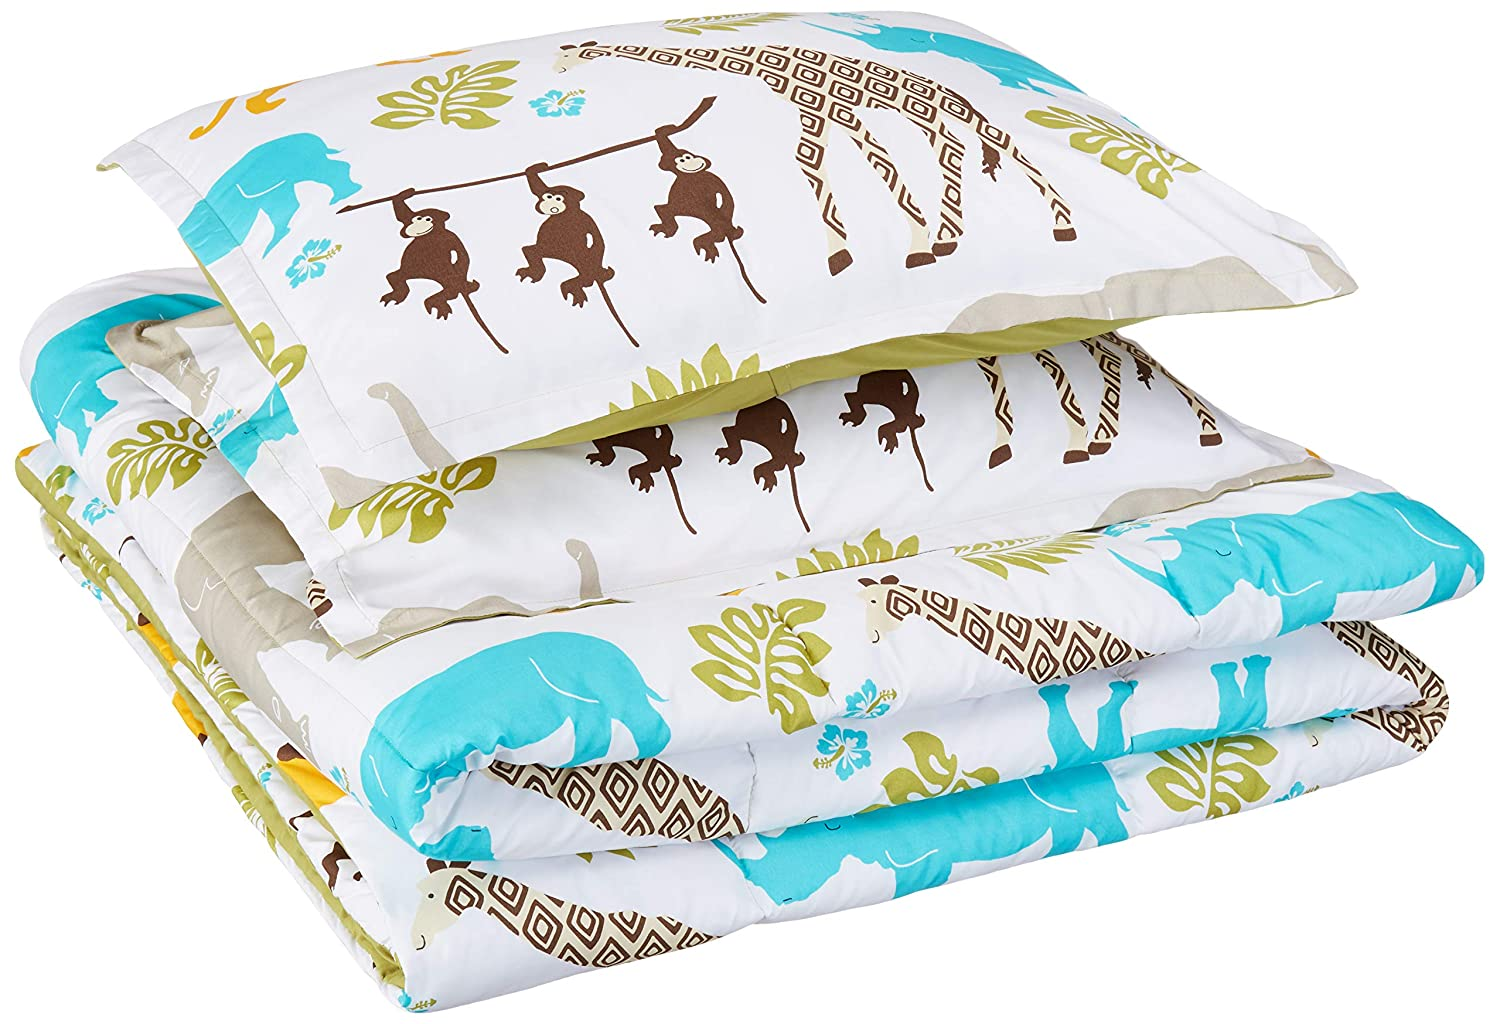 AmazonBasics Easy-Wash Microfiber Kid's Comforter and Pillow Sham Set - Full or Queen, Multi-Color Zoo Animals